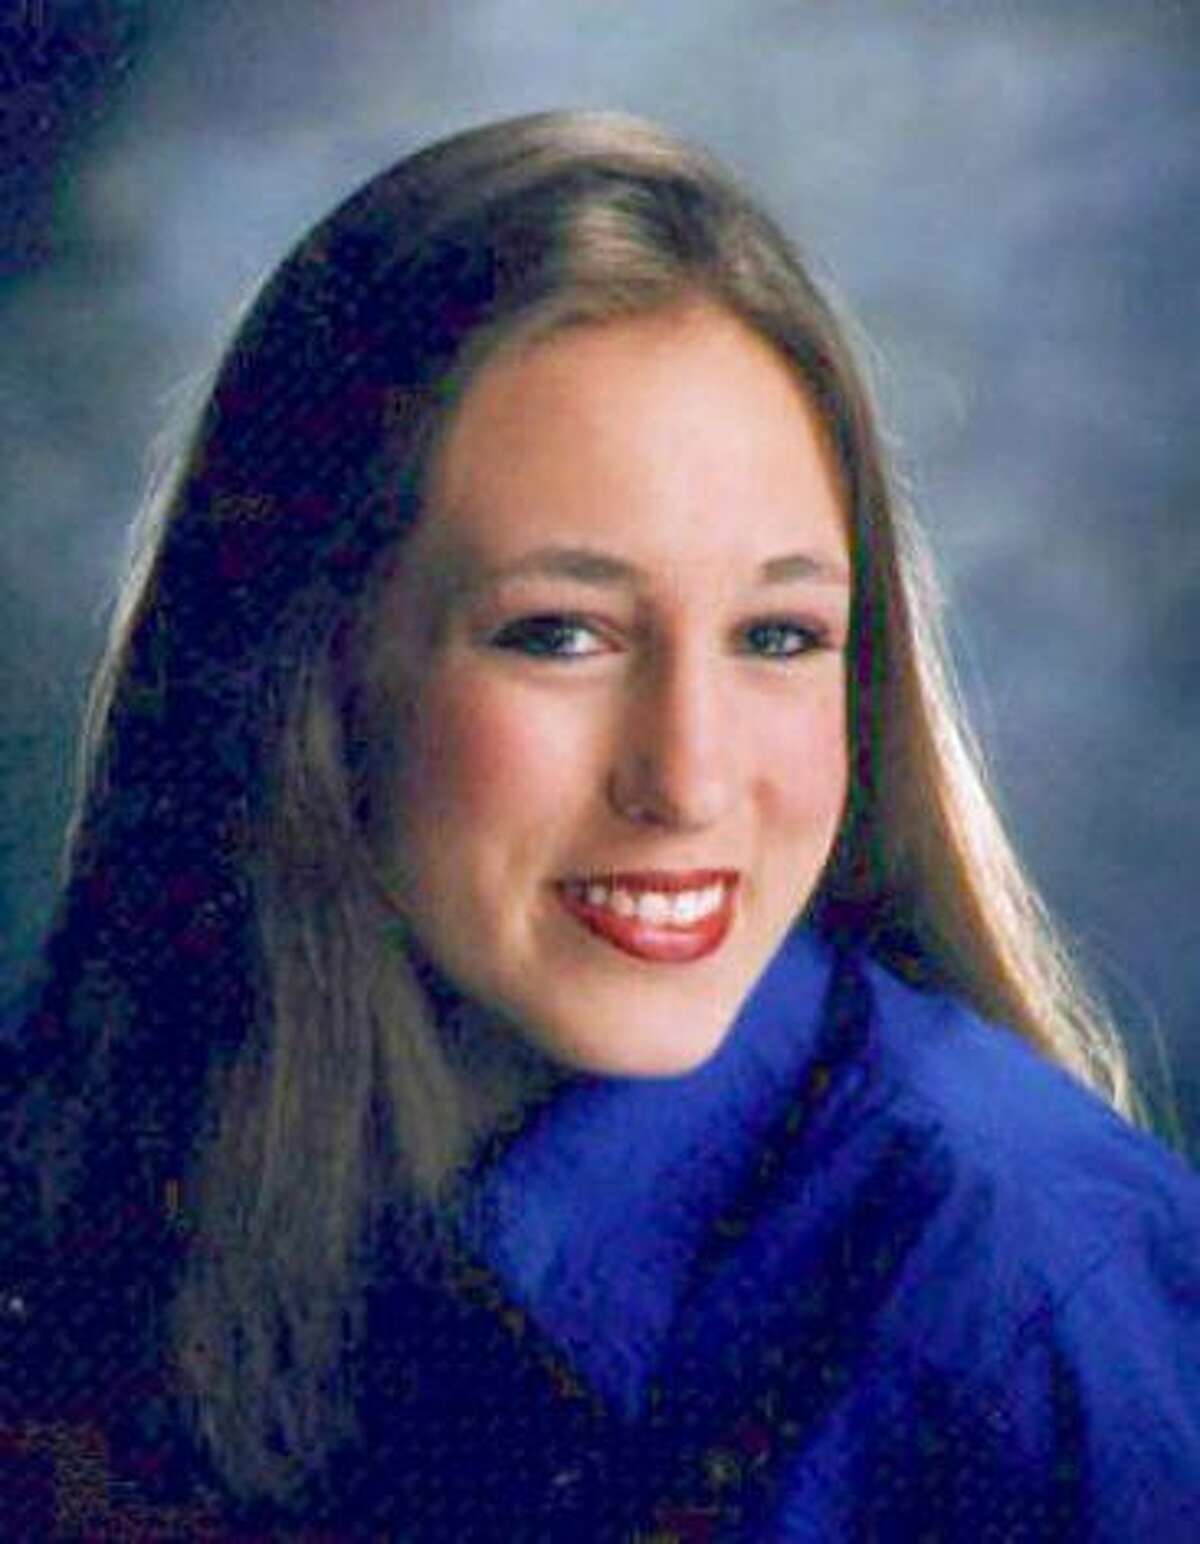 Larry Ray Swearingen was executed for the death of Melissa Trotter, a 19-year-old college student whose body was dumped among the trees of the Sam Houston National Forest.